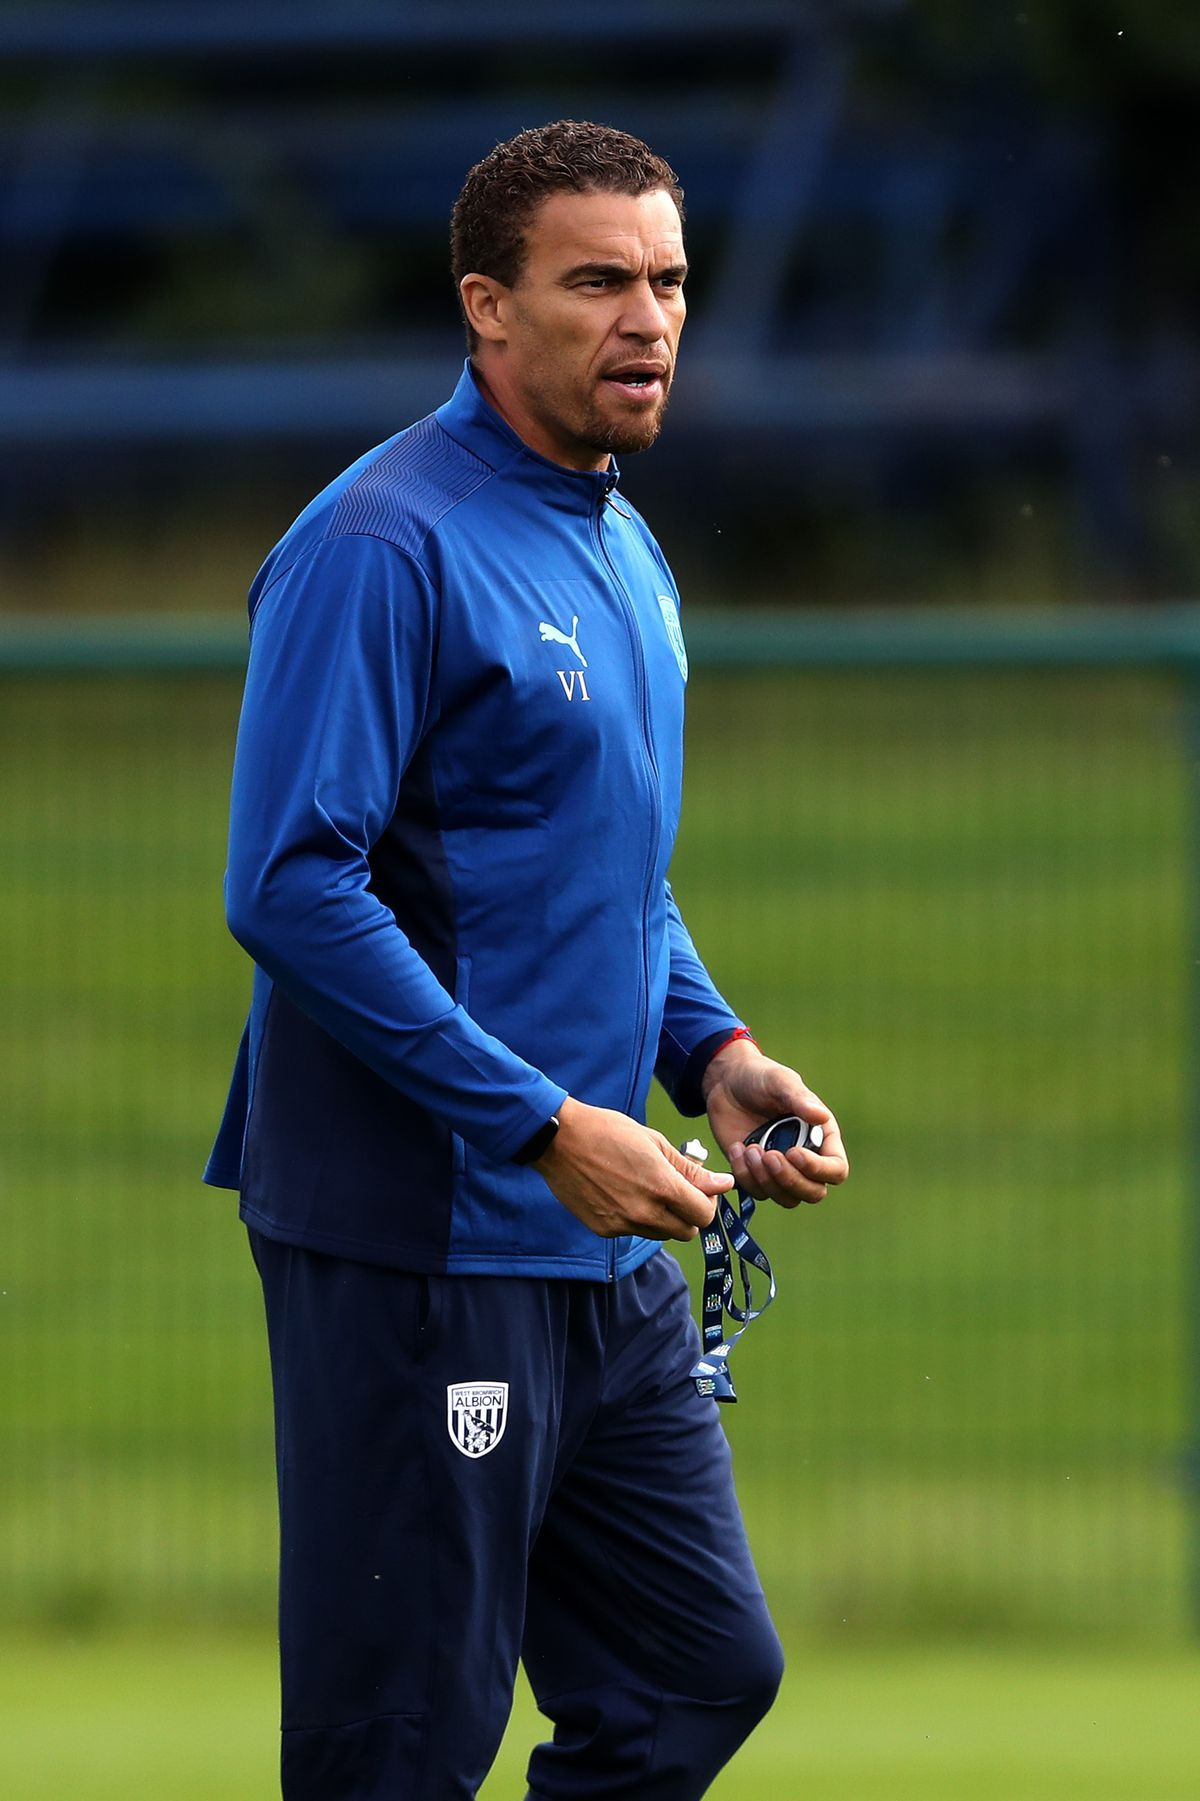 Valerien Ismael head coach / manager of West Bromwich Albion.